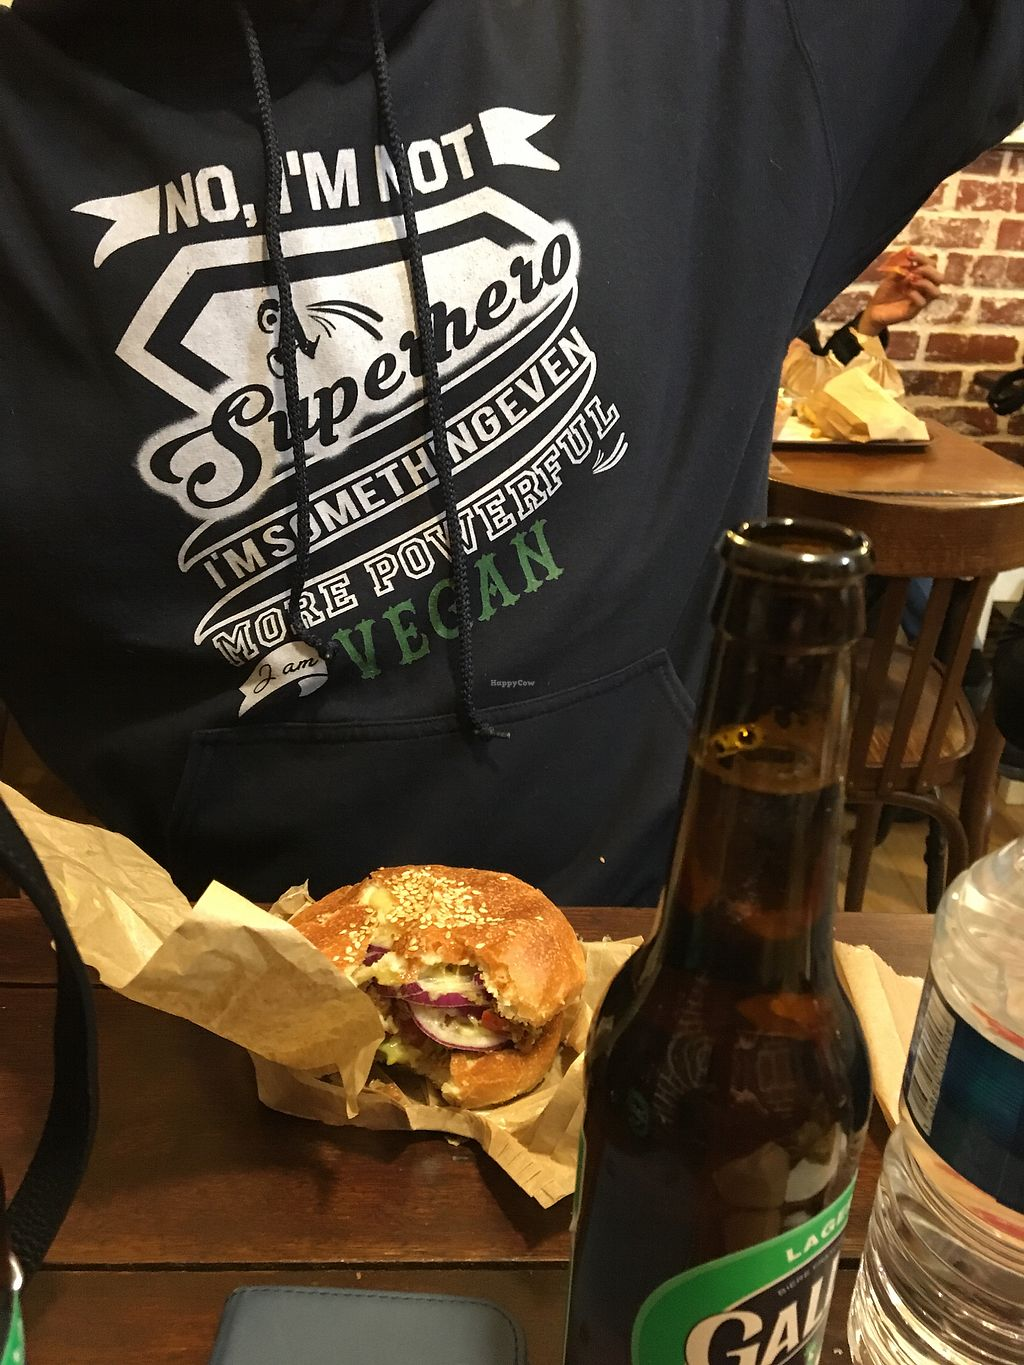 """Photo of East Side Burgers  by <a href=""""/members/profile/Marianne1967"""">Marianne1967</a> <br/>Mexican burger veganized  <br/> February 10, 2018  - <a href='/contact/abuse/image/34087/357453'>Report</a>"""